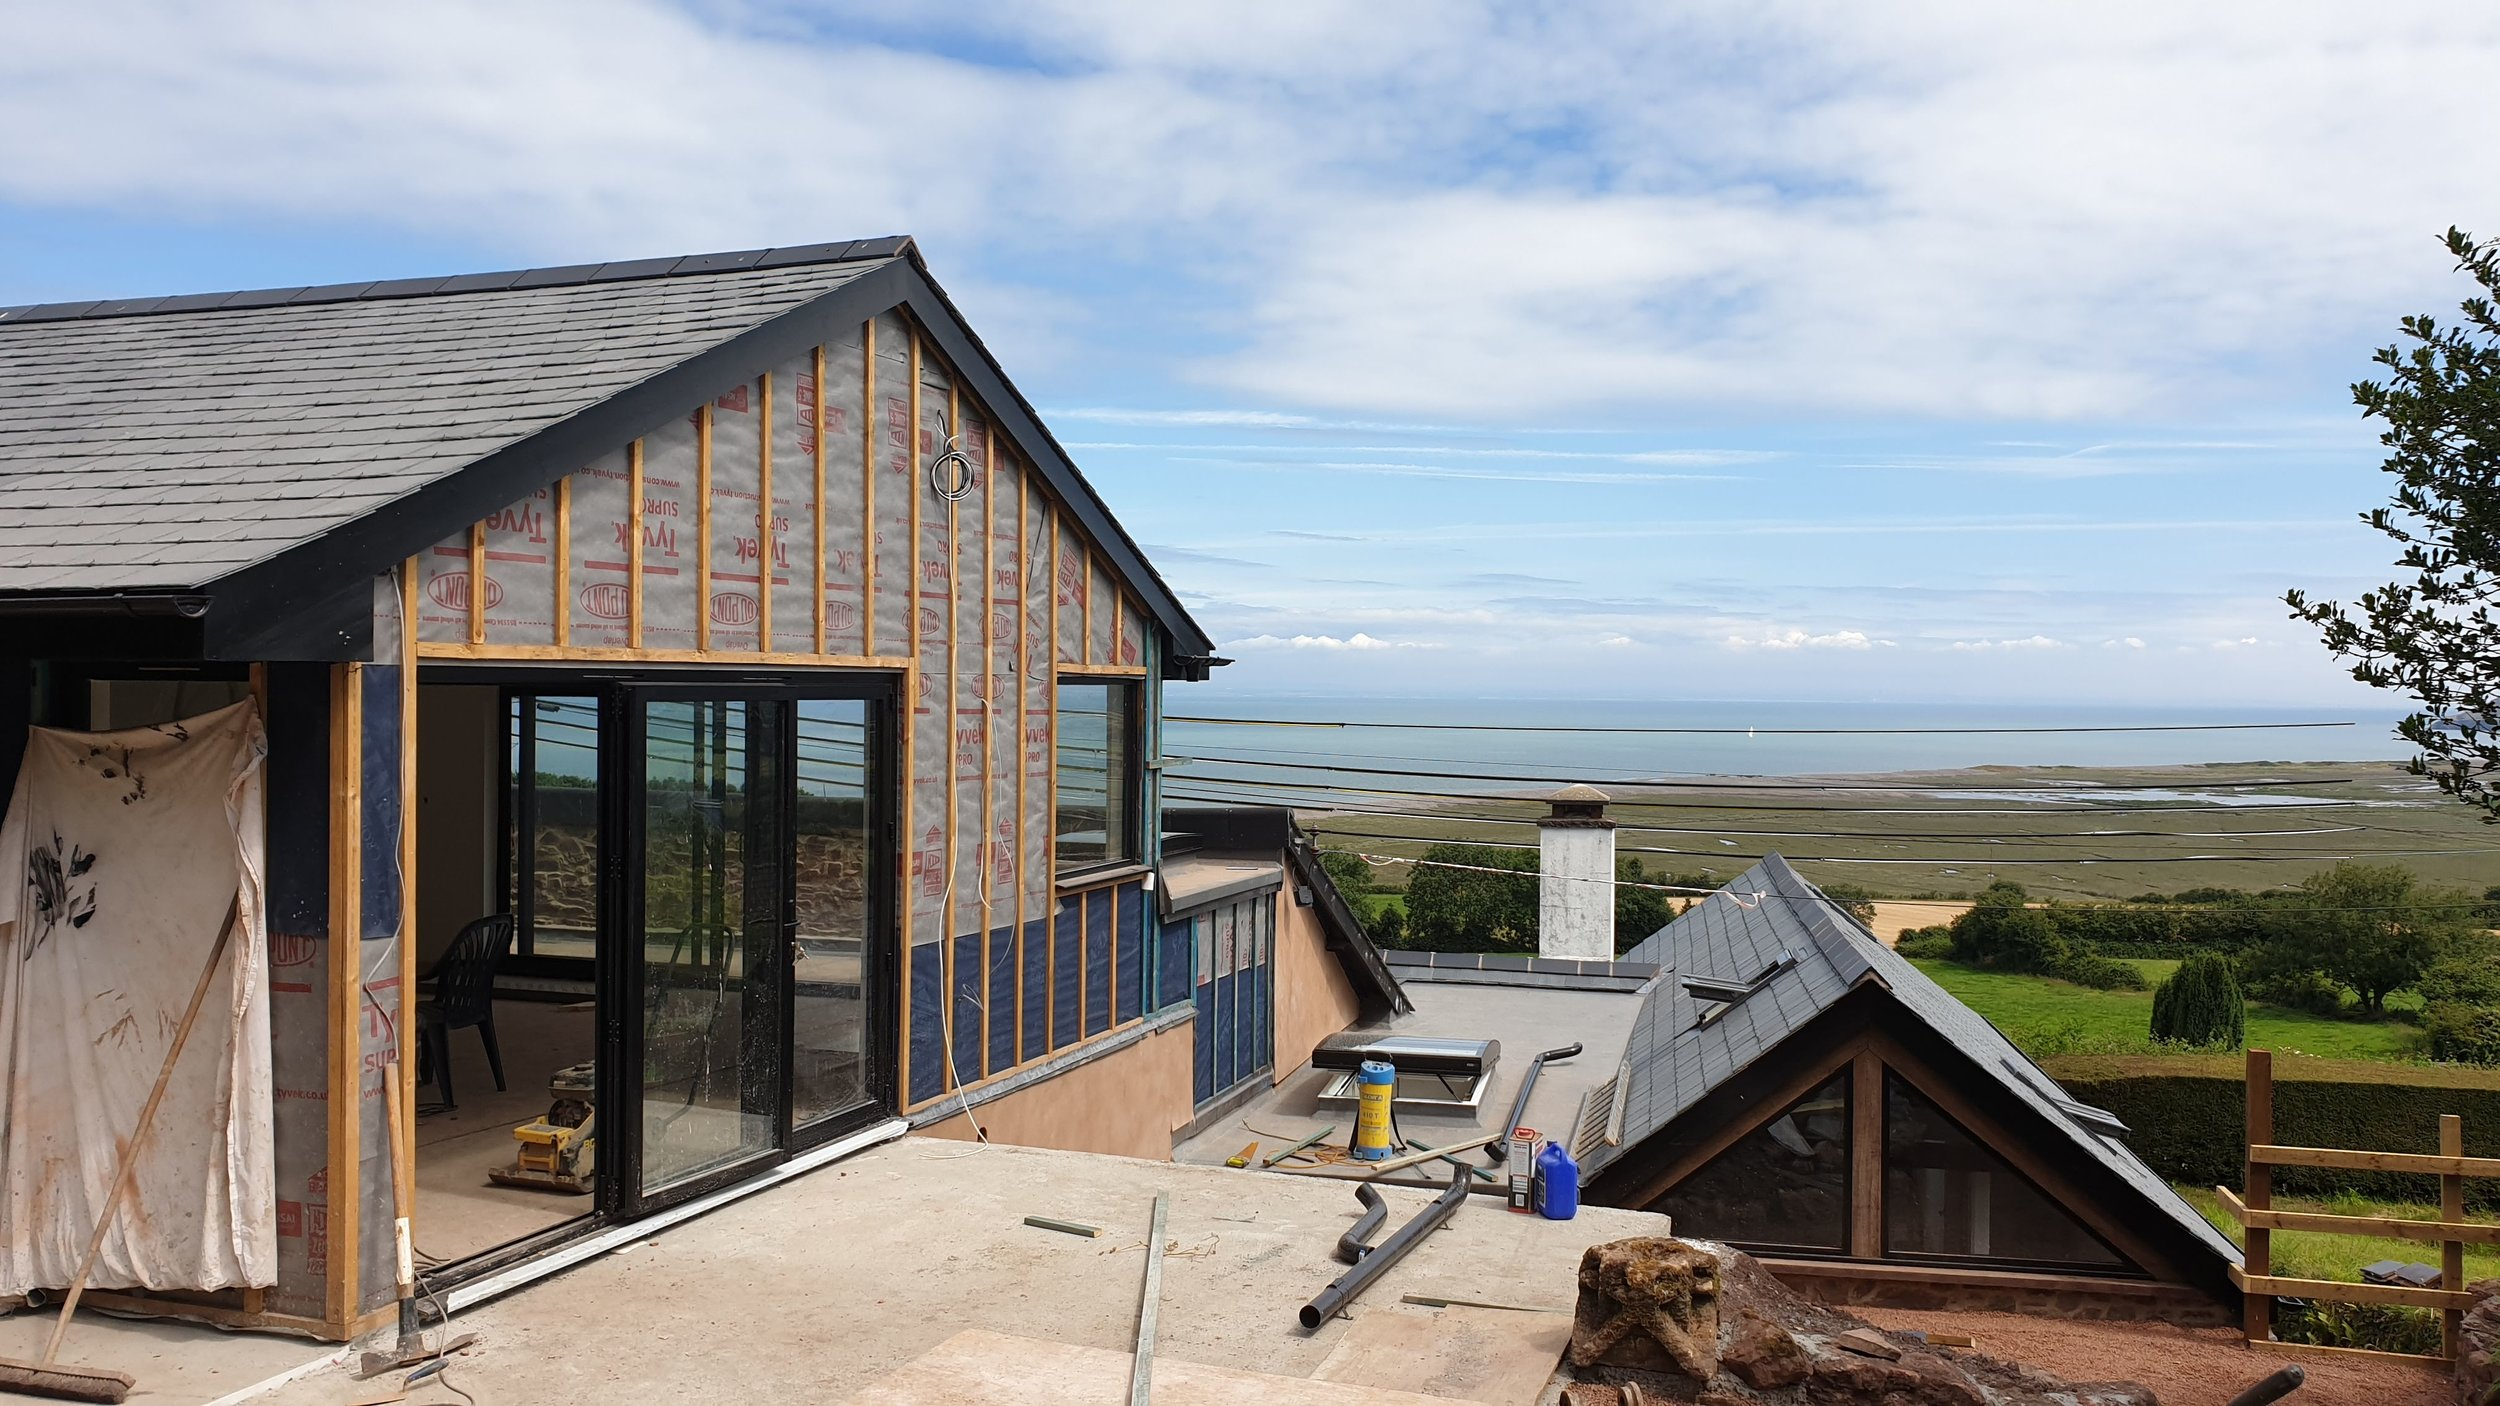 forge-planning-approval-exmoor-nick-thorne-extension-panoramic-view